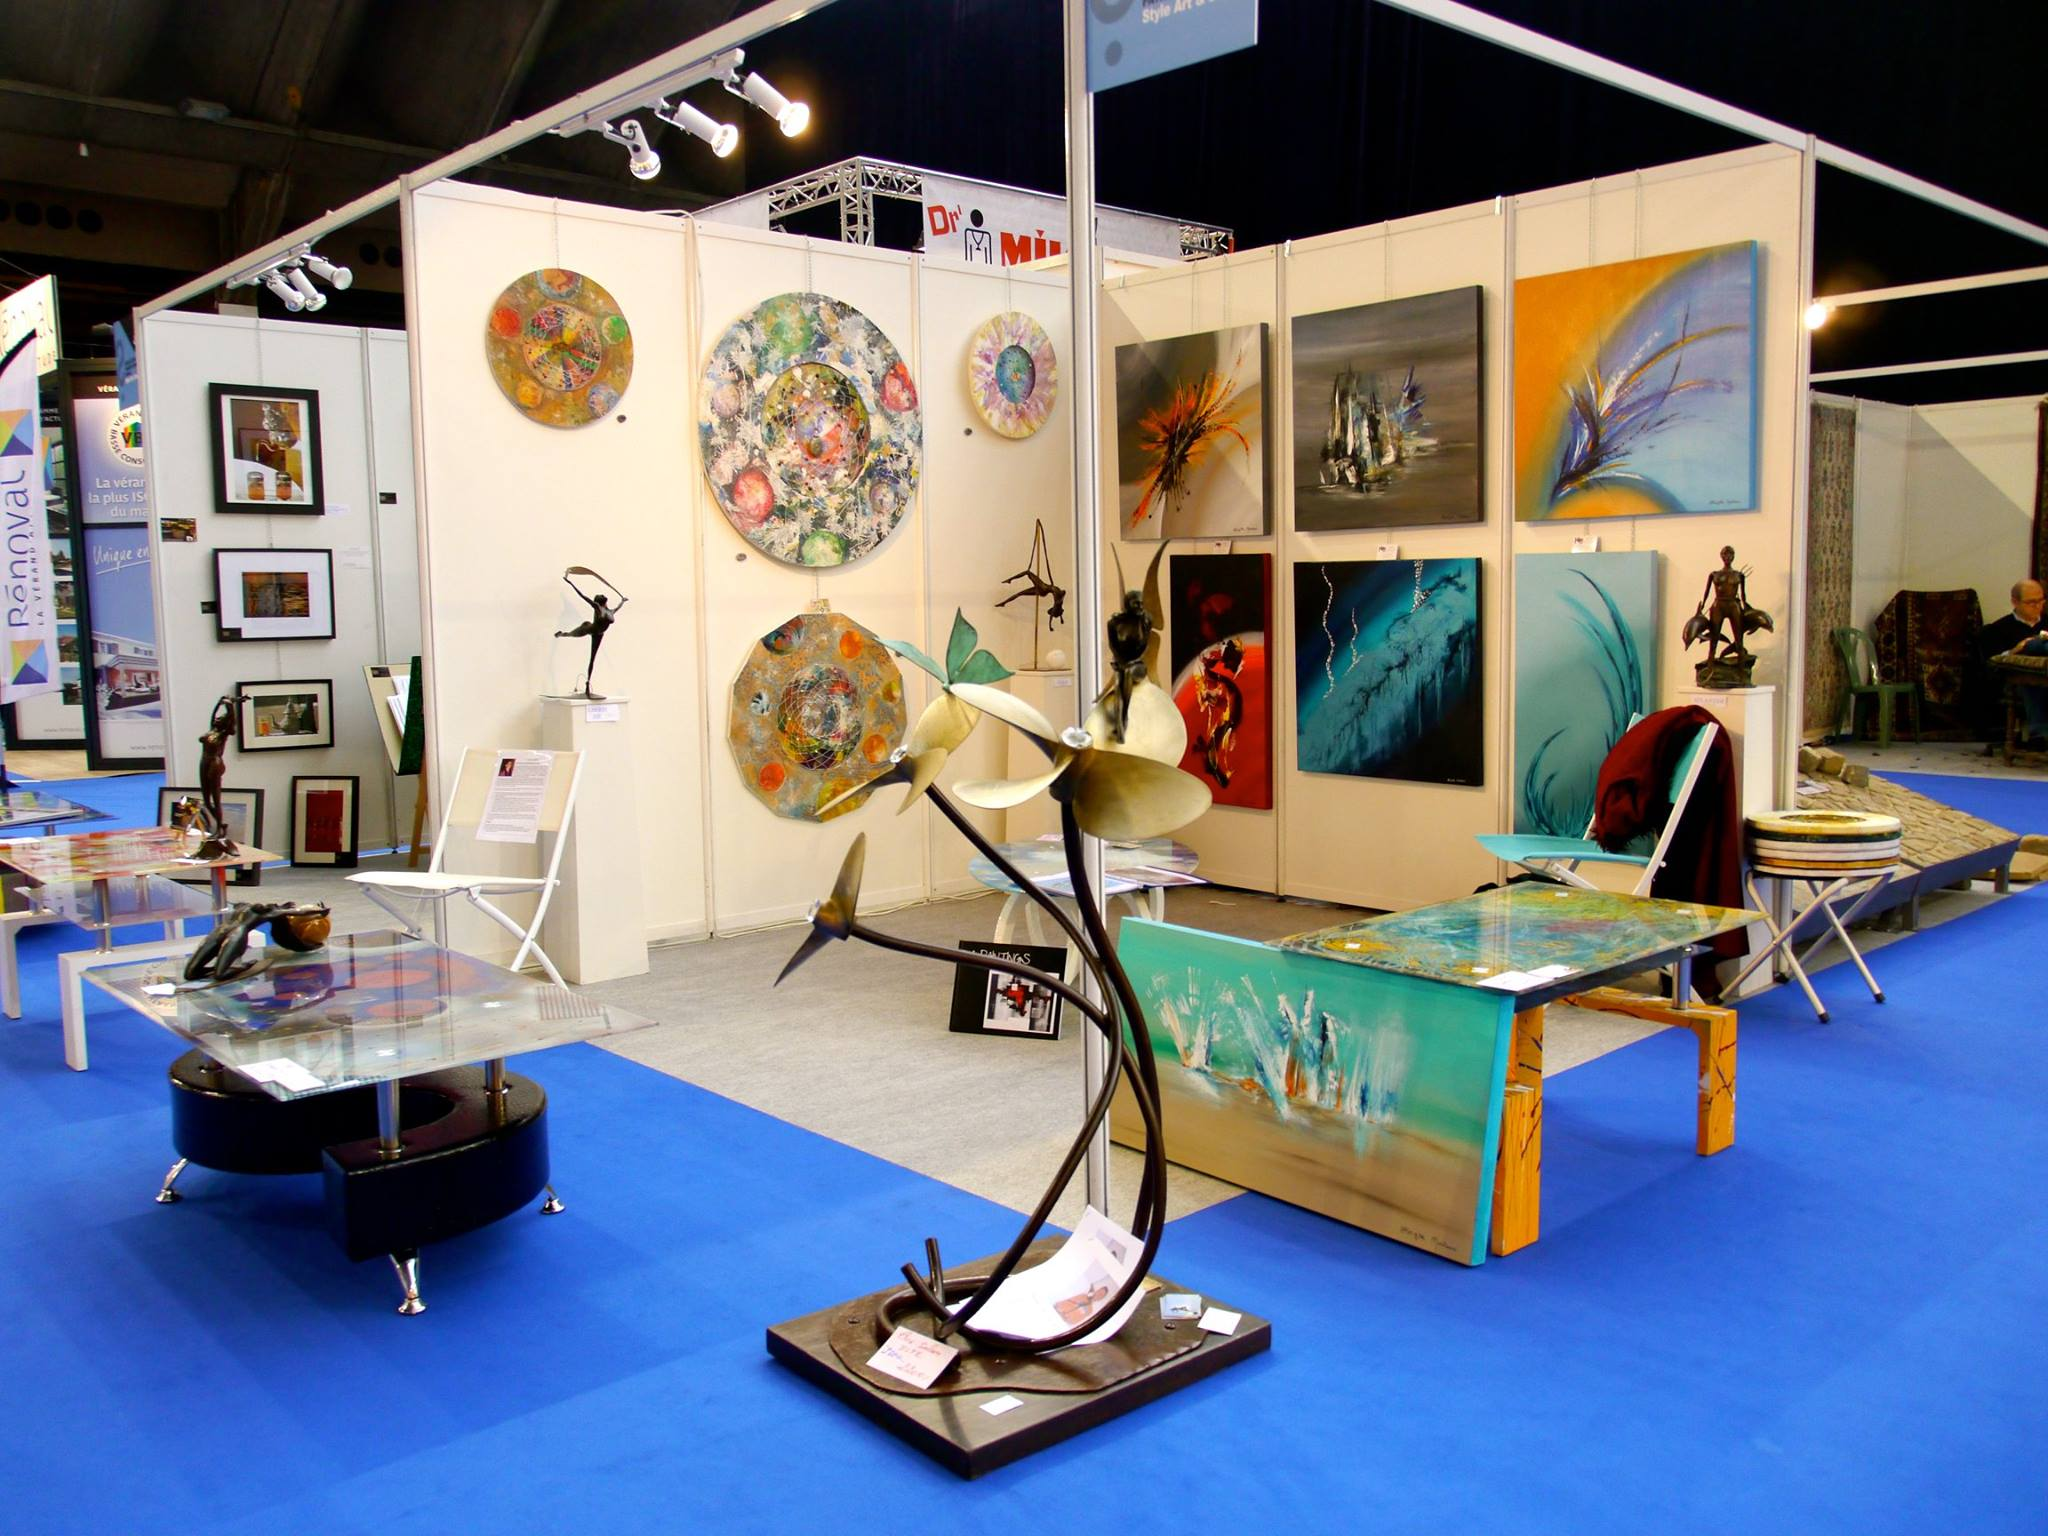 Salon du Design - Novembre 2014